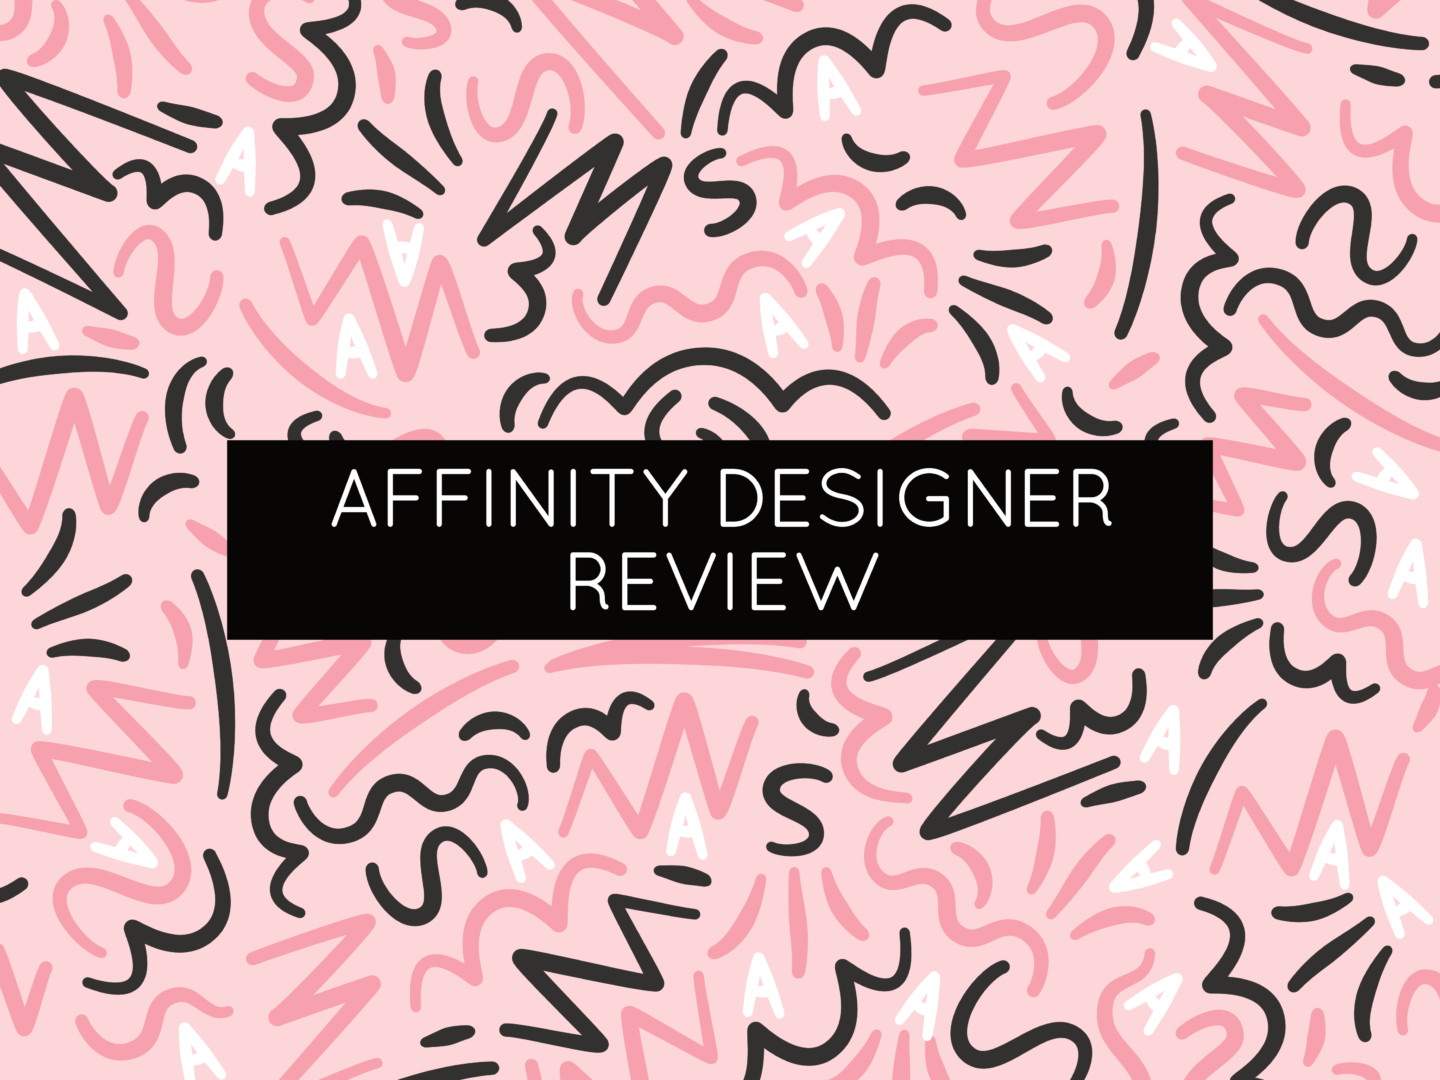 affinity designer review